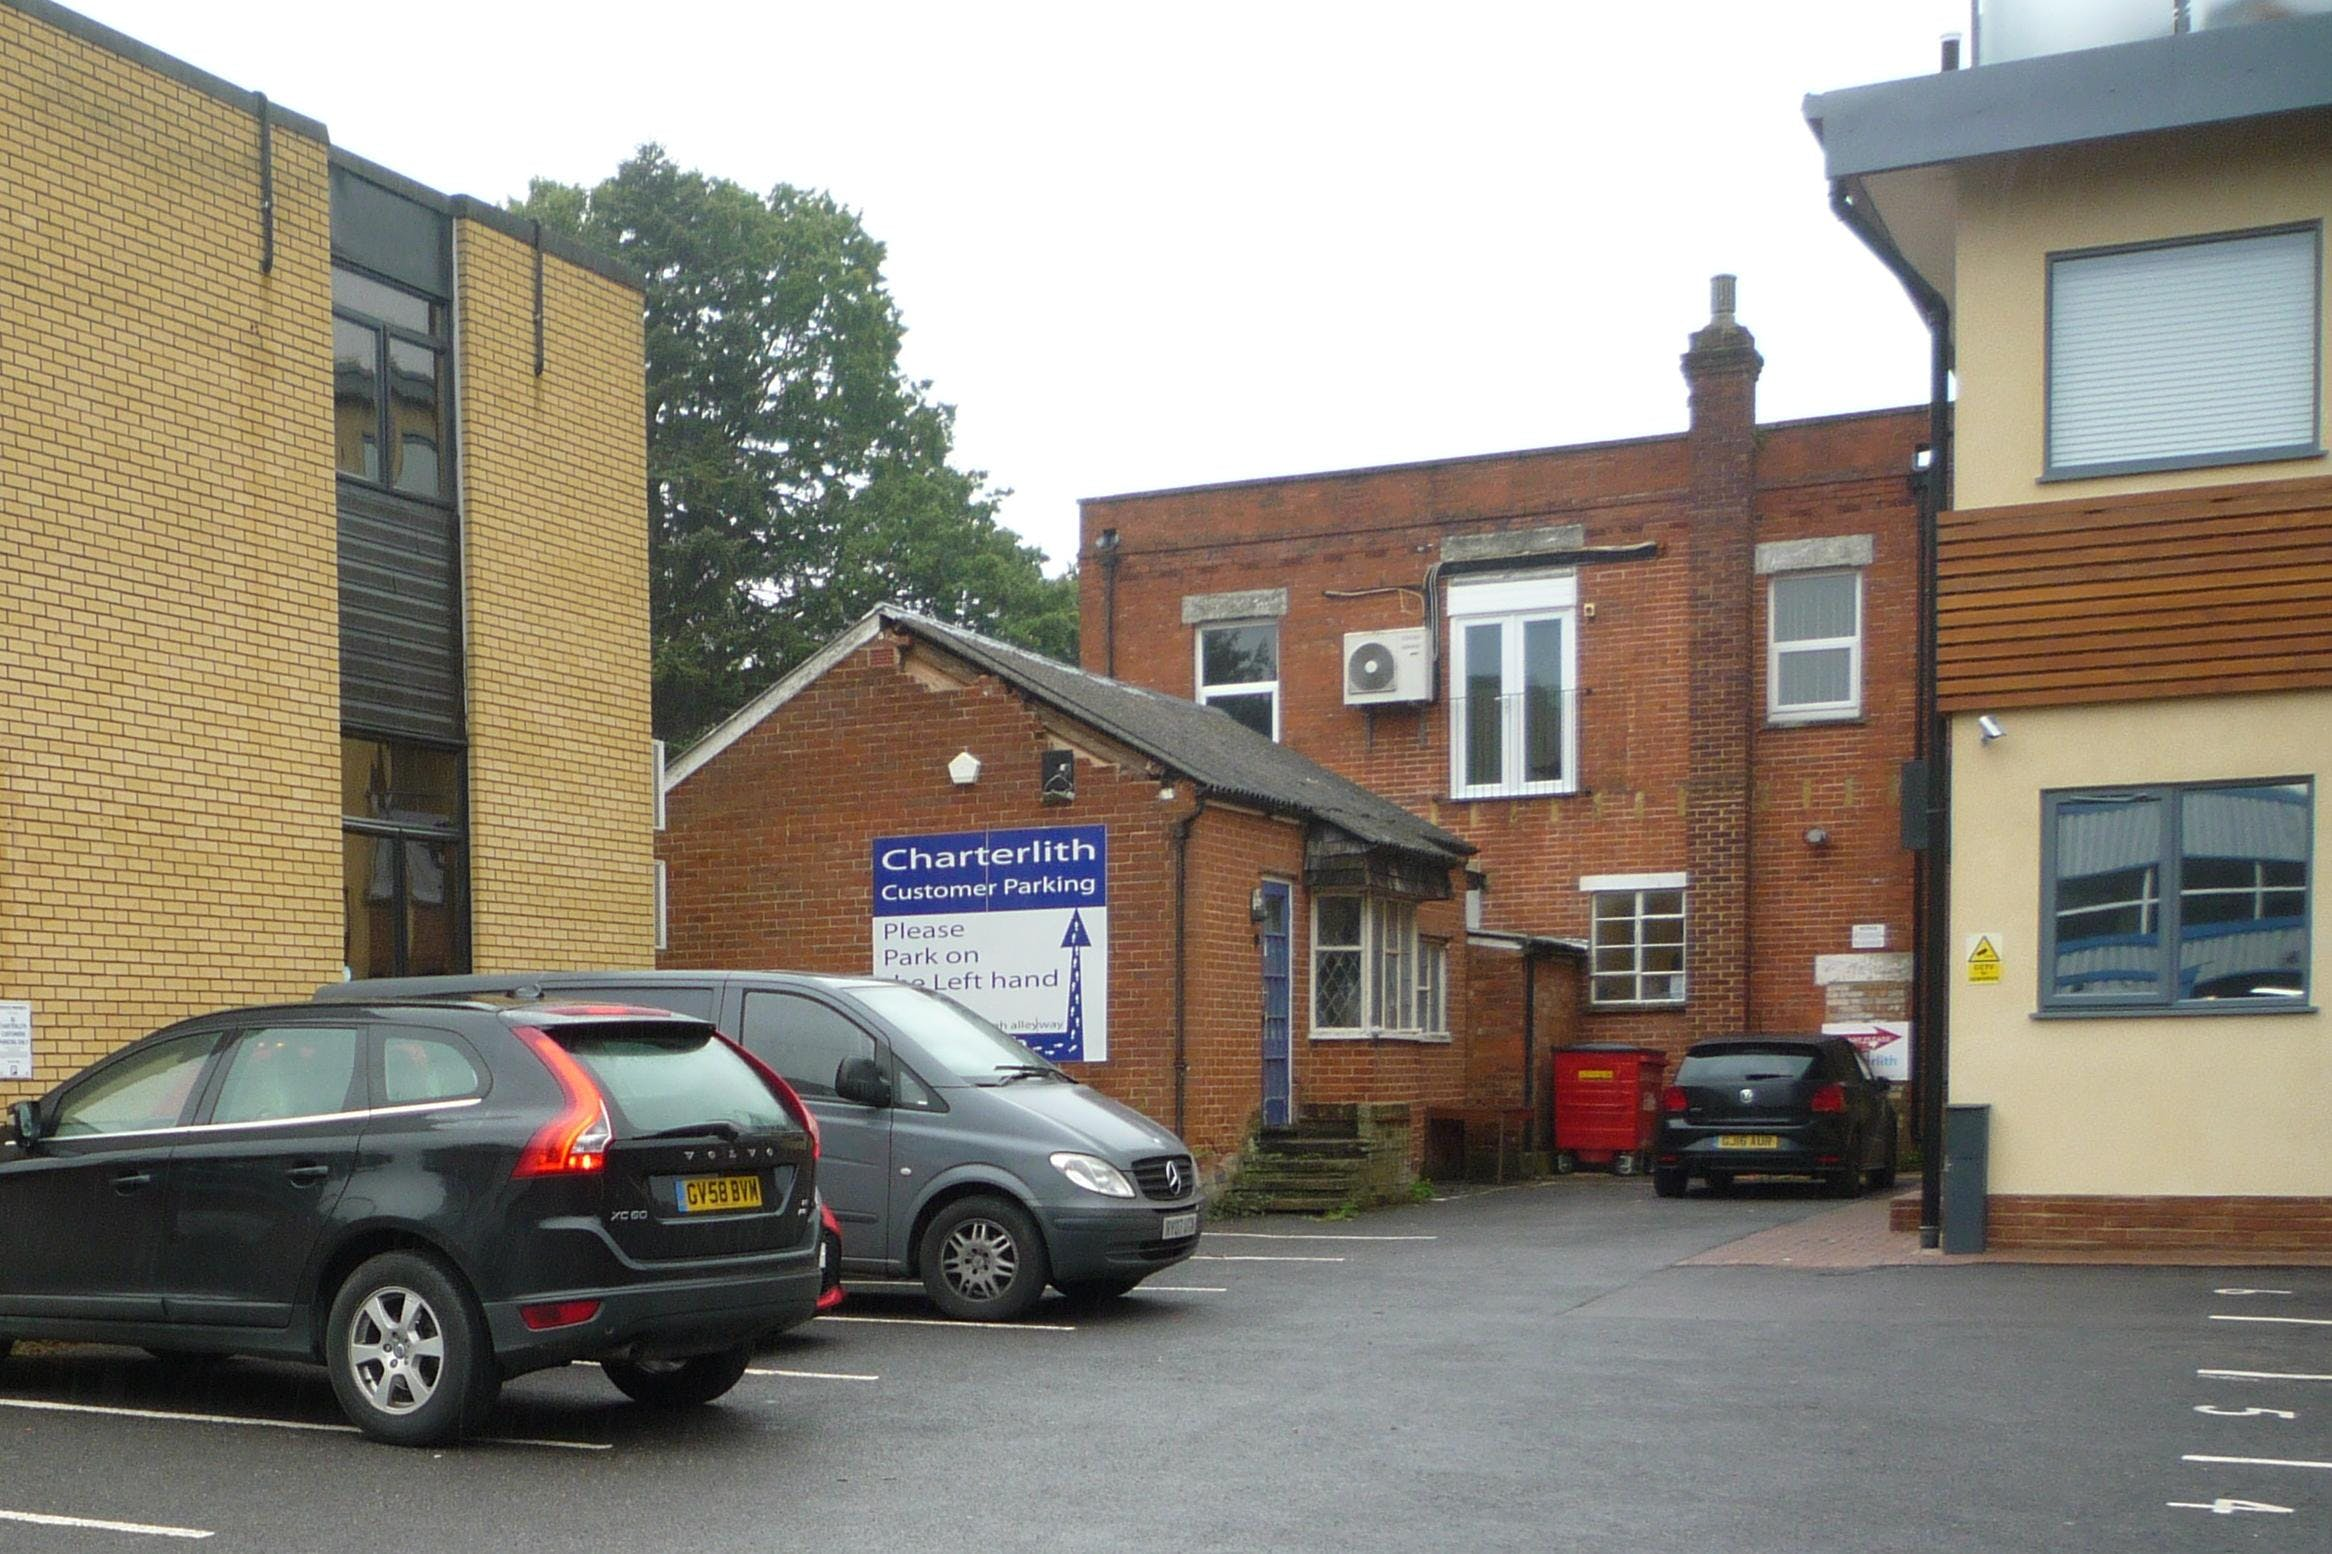 30 Reading Road South, Fleet, Office To Let - P1040358.JPG